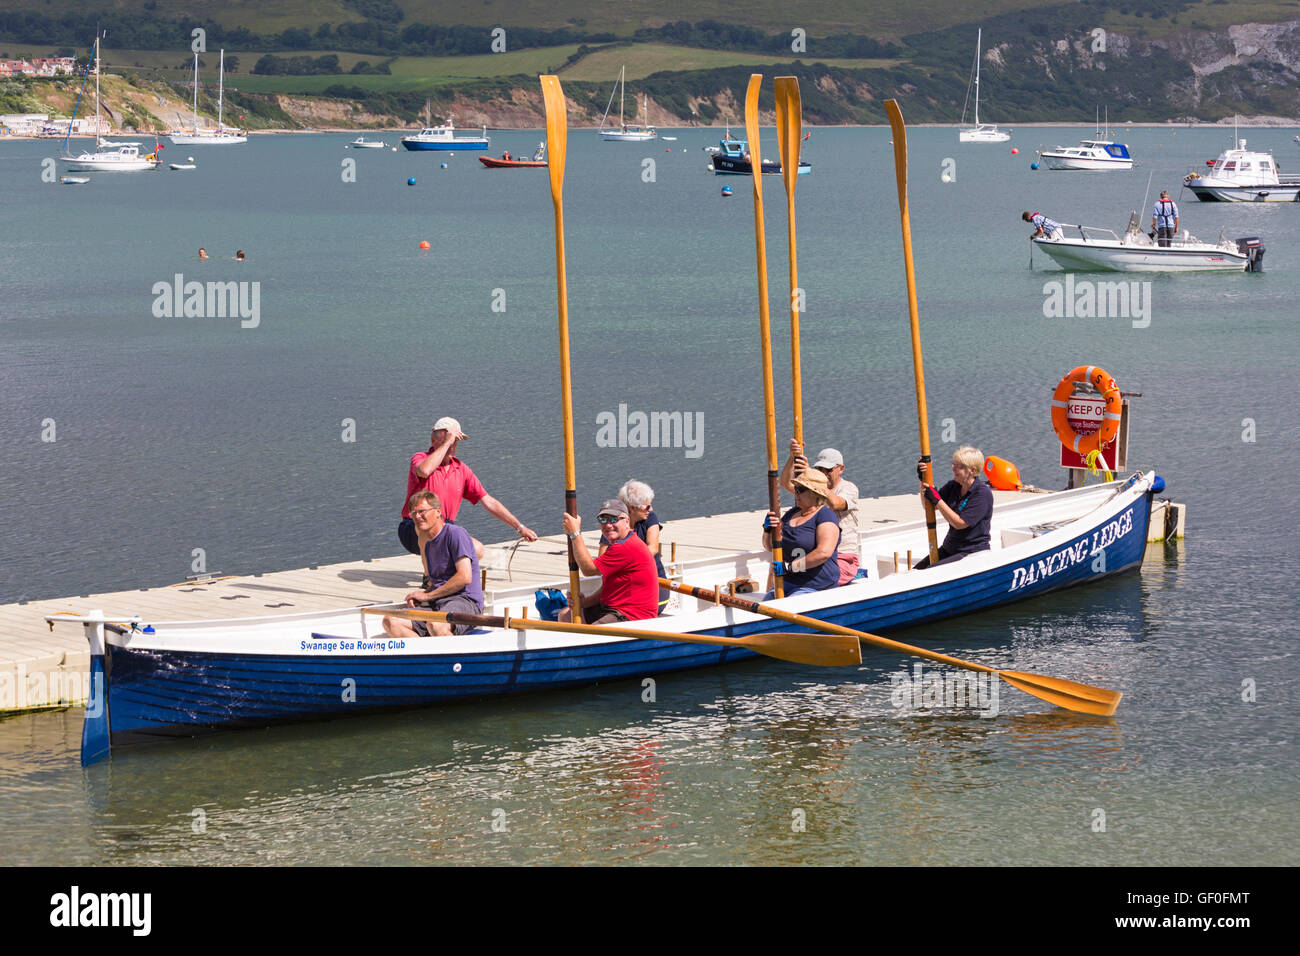 Swanage Sea Rowing Club in Dancing Ledge gig holding oars up at Swanage in July - Stock Image